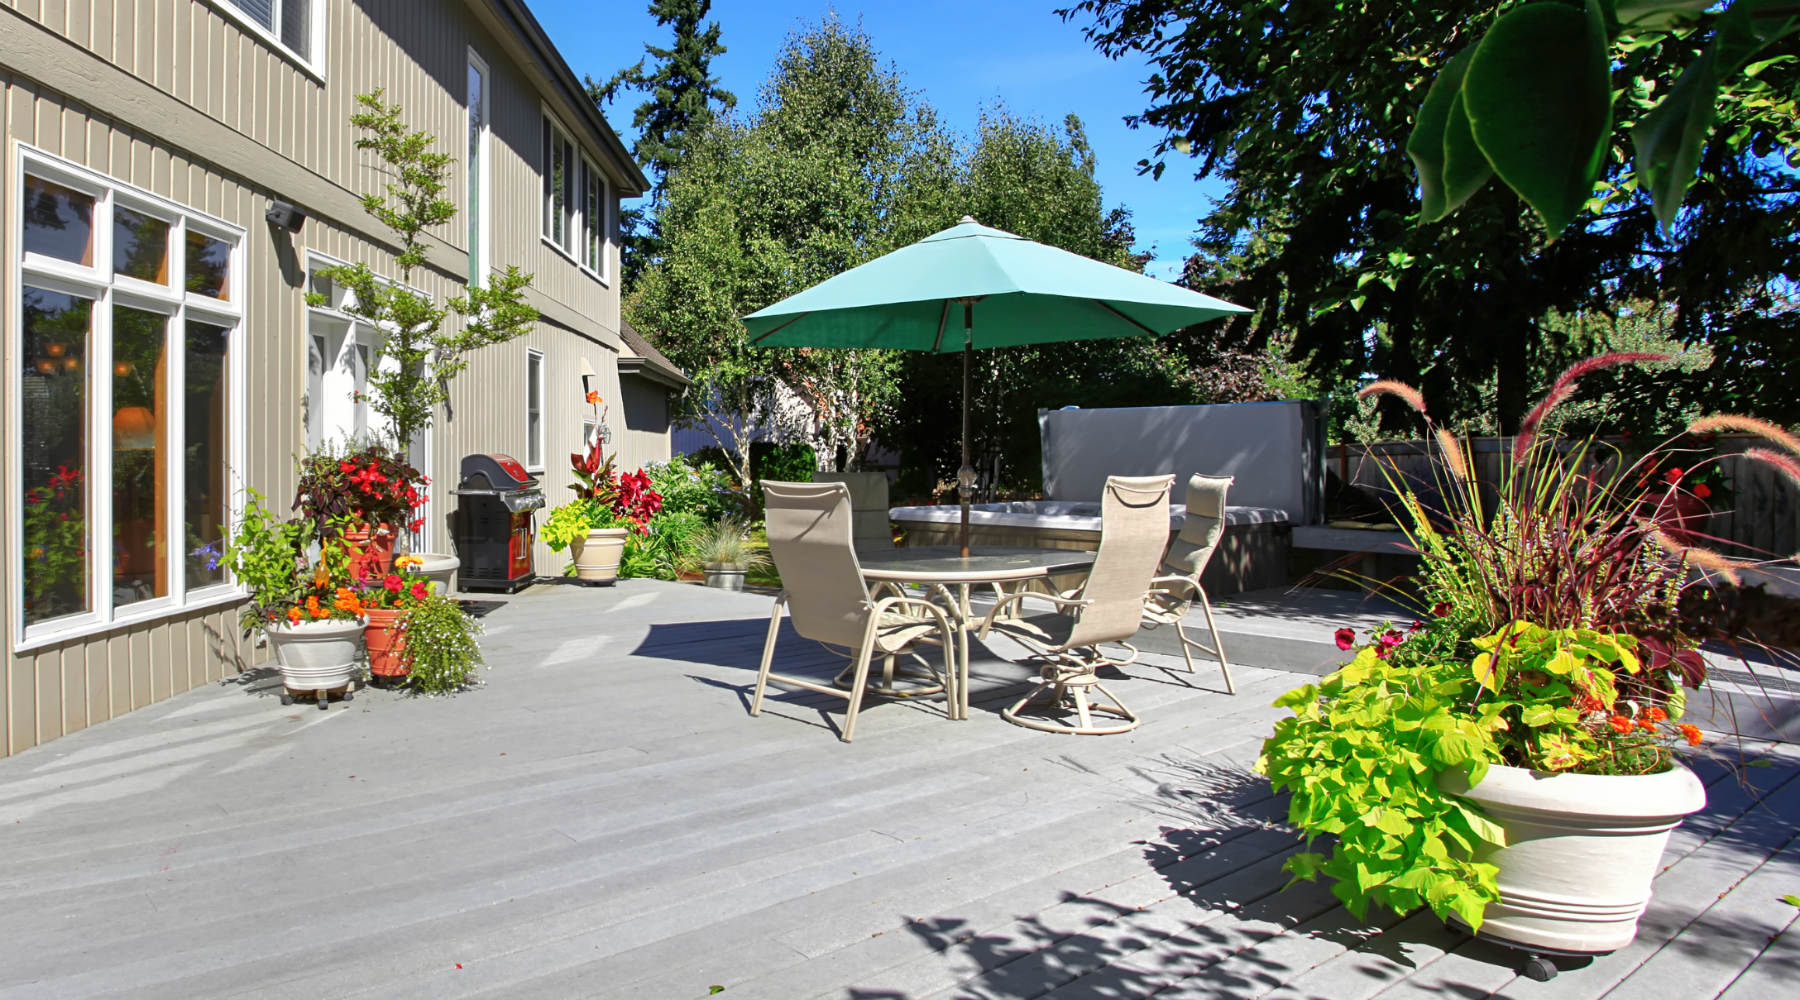 Rear deck with table and pots of flowers